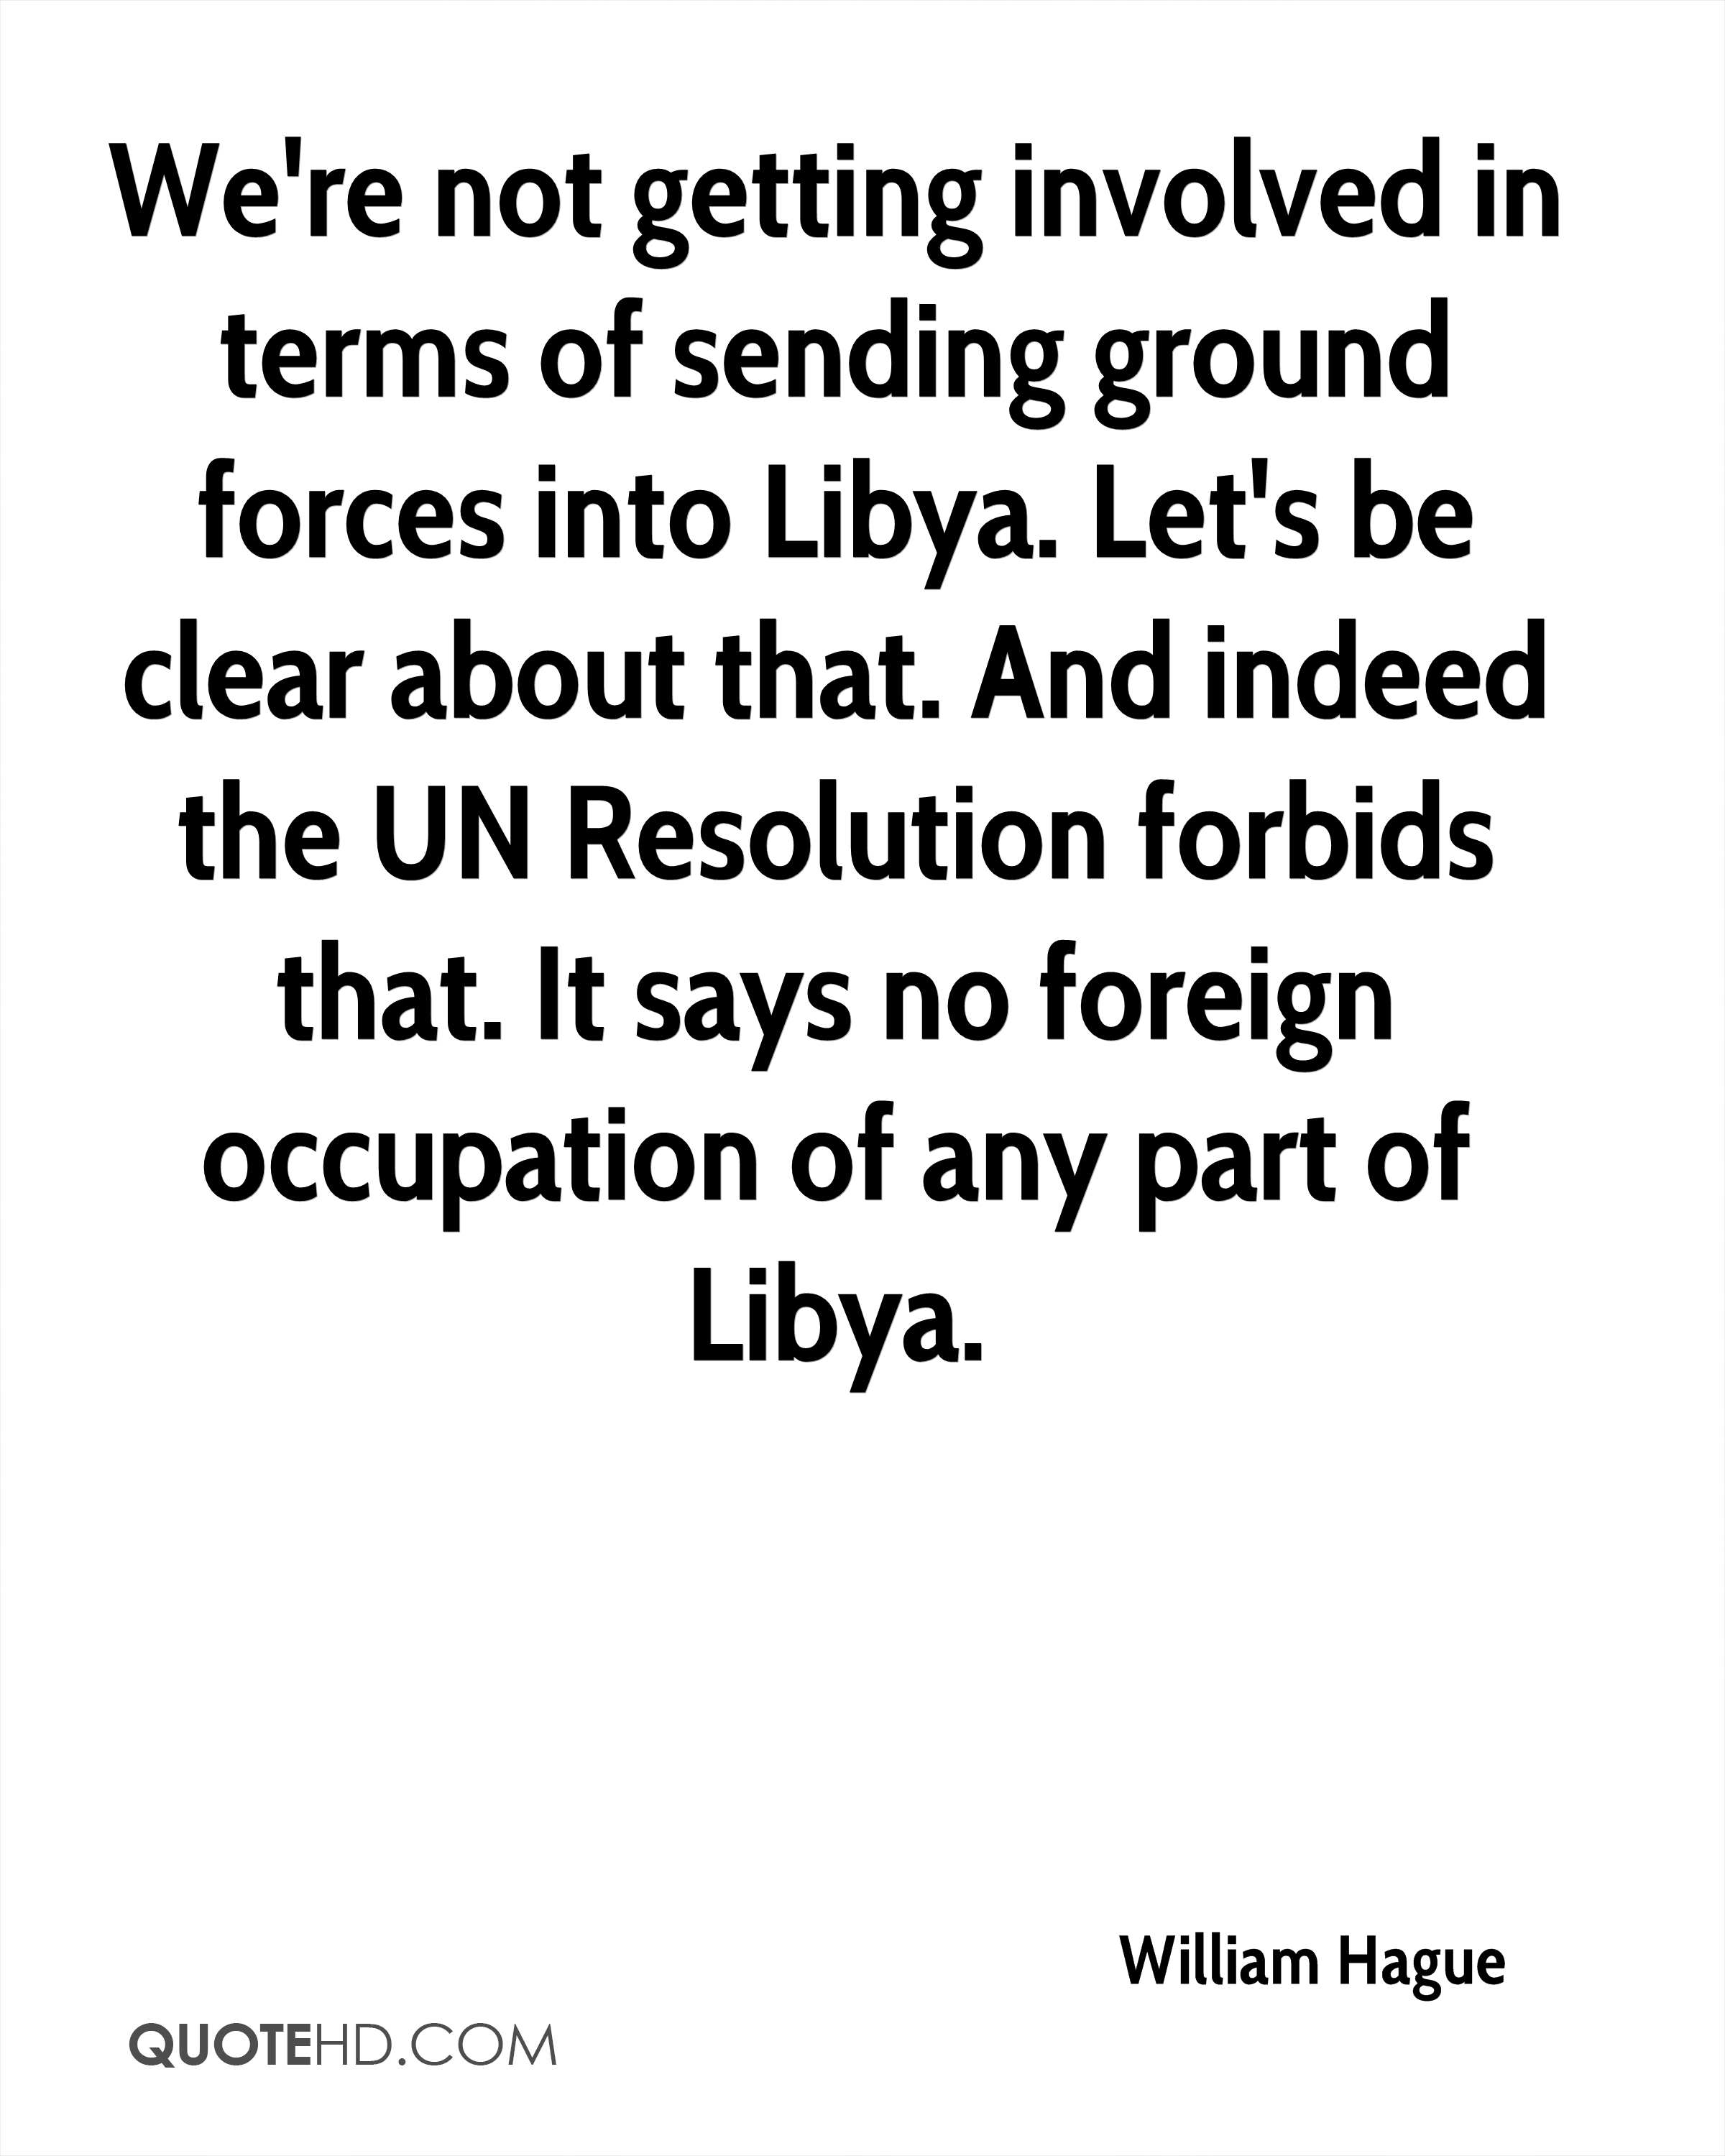 We're not getting involved in terms of sending ground forces into Libya. Let's be clear about that. And indeed the UN Resolution forbids that. It says no foreign occupation of any part of Libya.